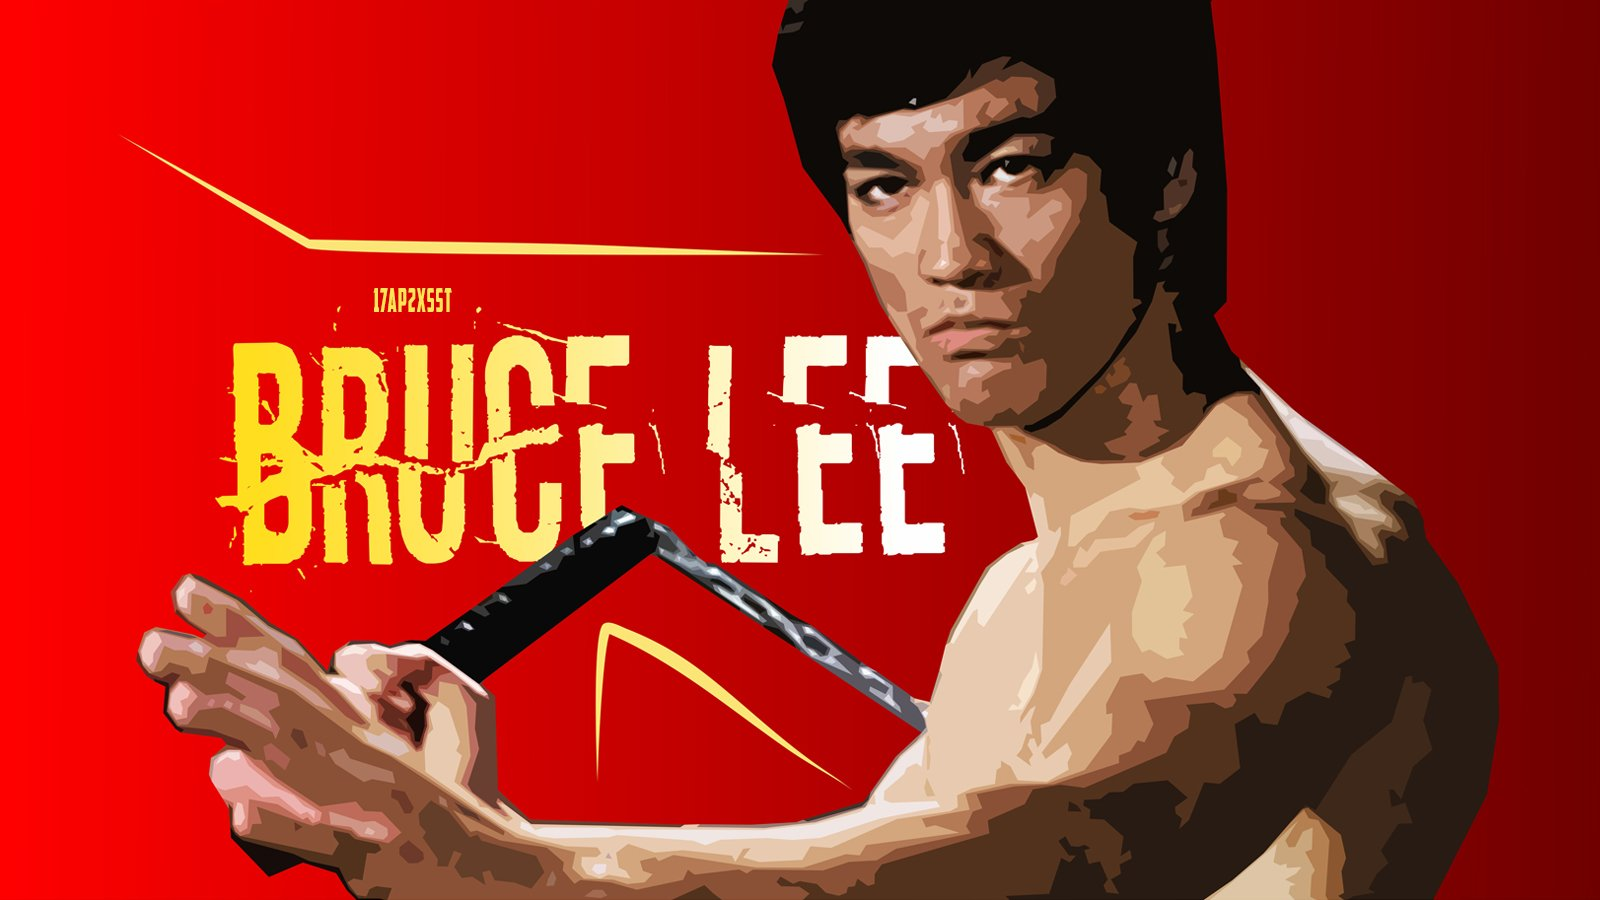 Bruce Lee Wallpaper and Background Image | 1600x900 | ID ...